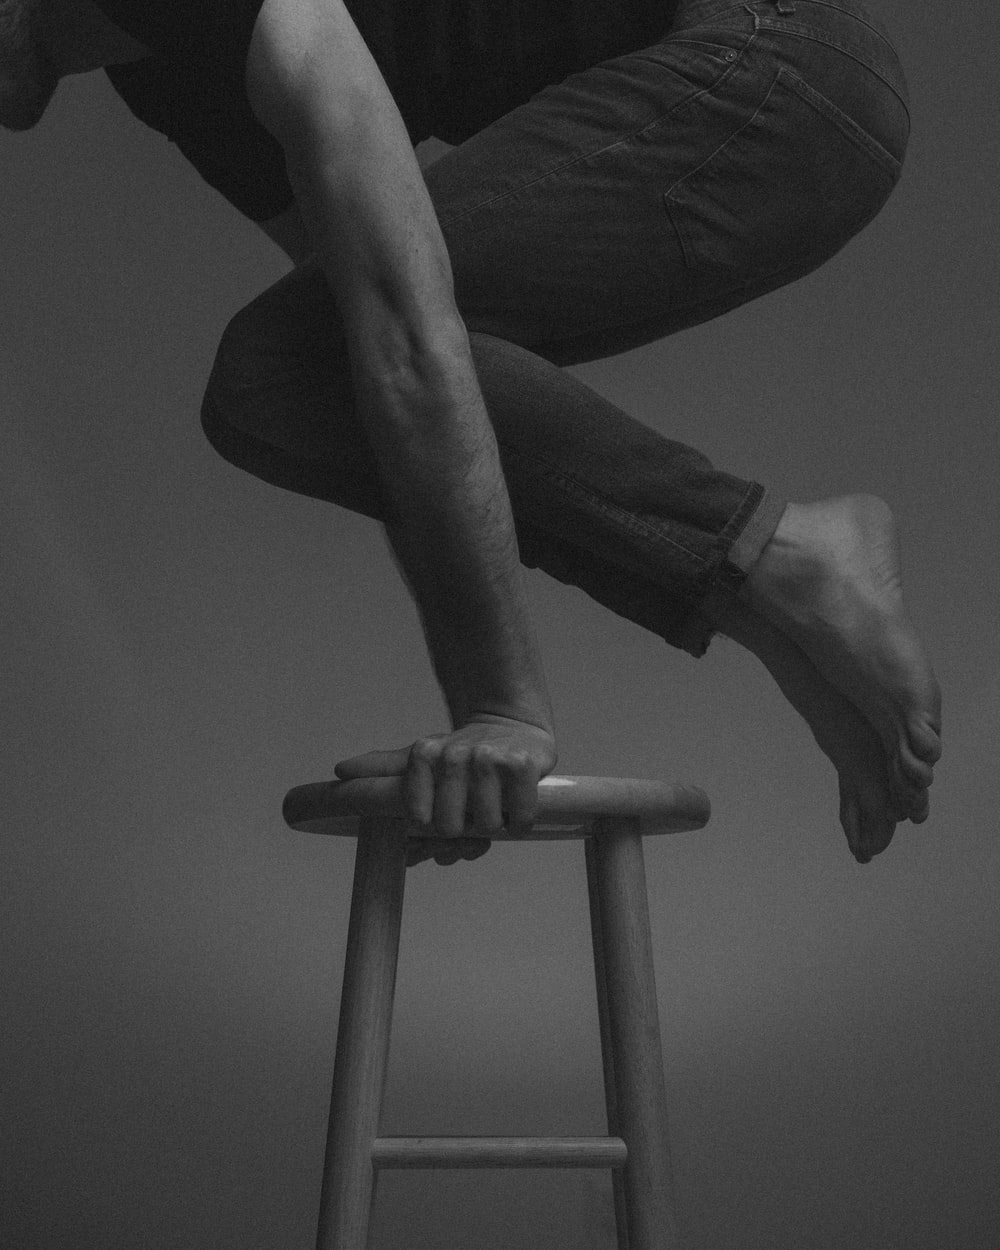 person raising body on chair